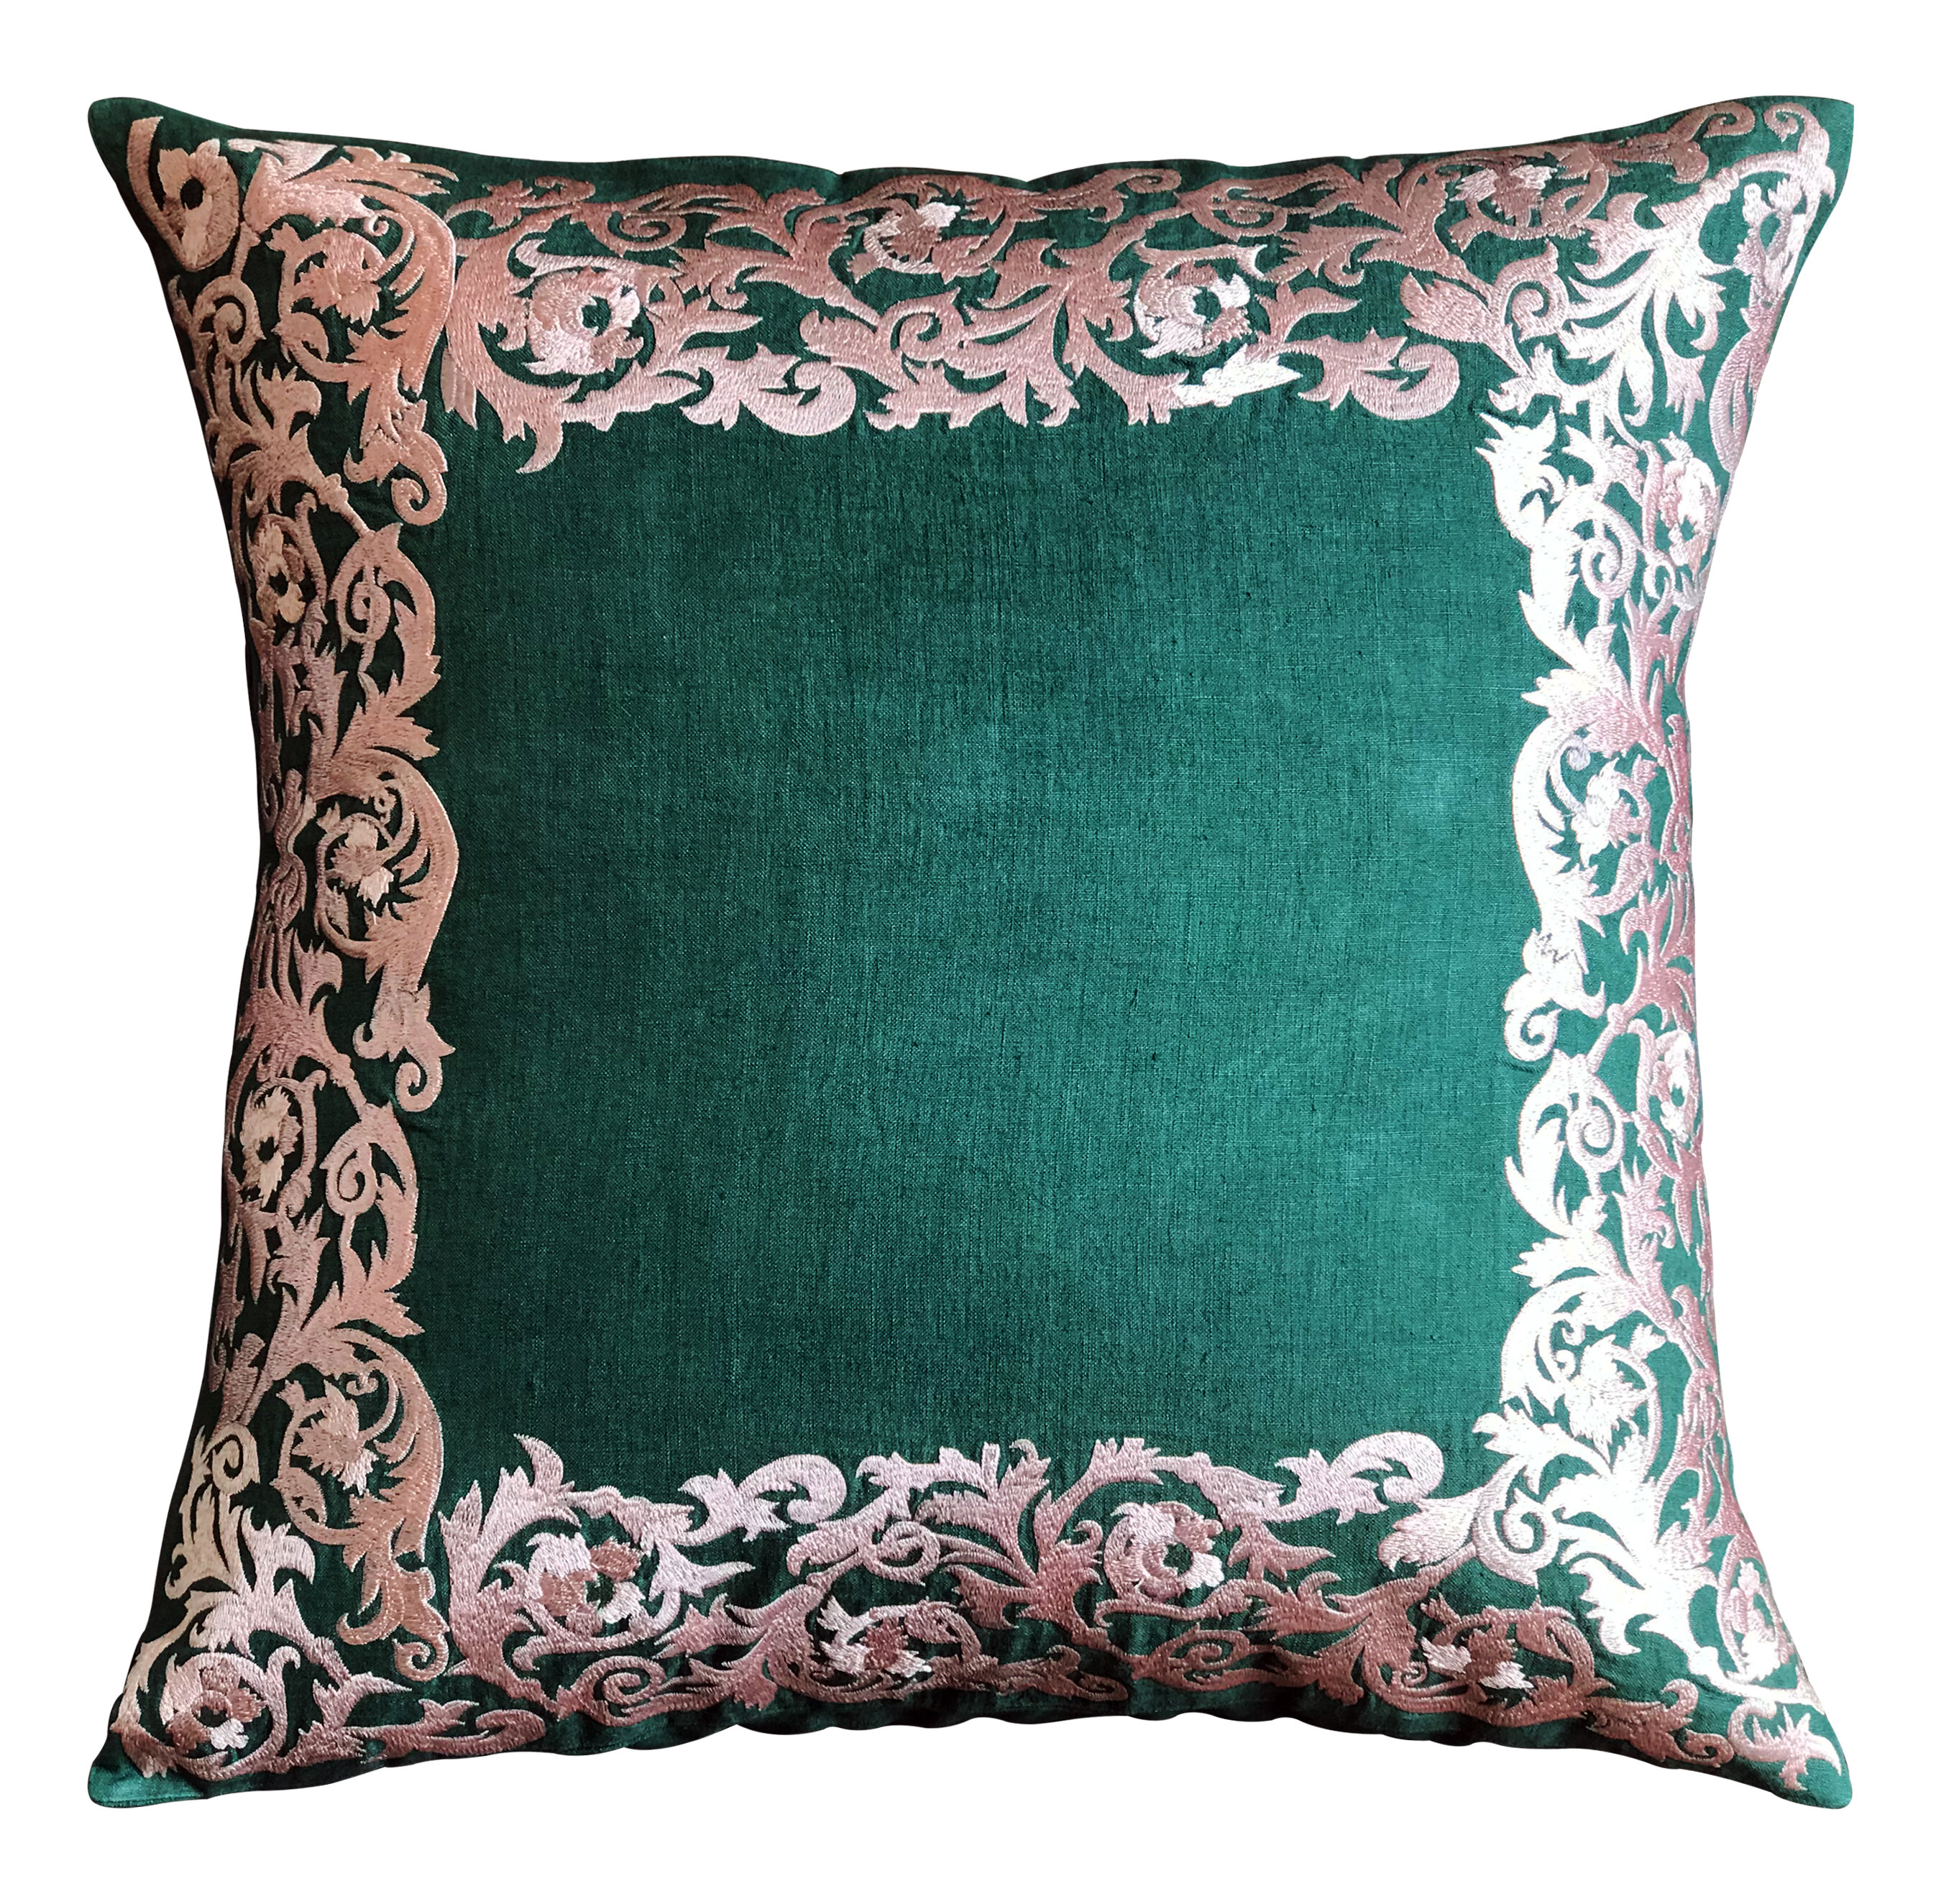 House Of Hampton Racette Embroidered Linen Floral Throw Pillow Cover Wayfair